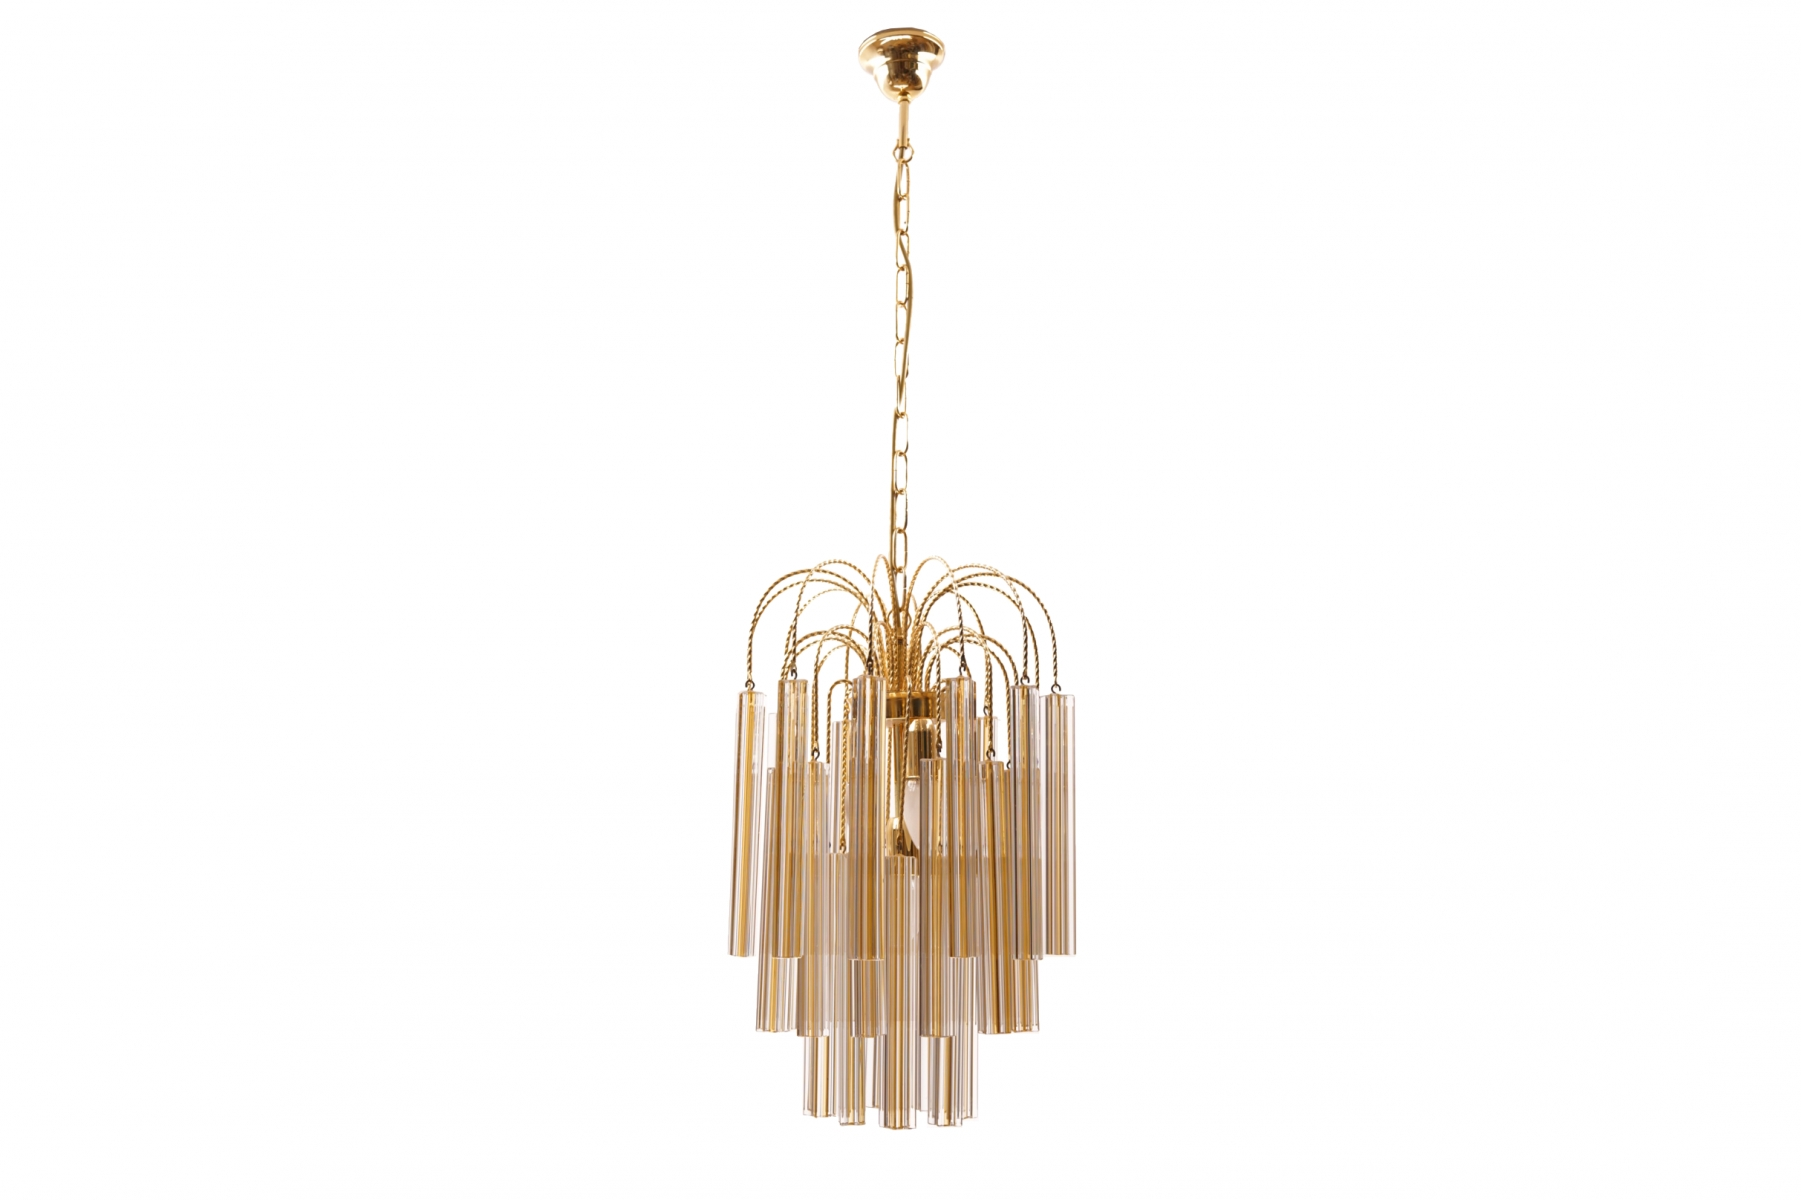 Newest Vintage Chandelier With Regard To Vintage Chandelier With Murano Glass From Venini For Sale At Pamono (View 3 of 20)